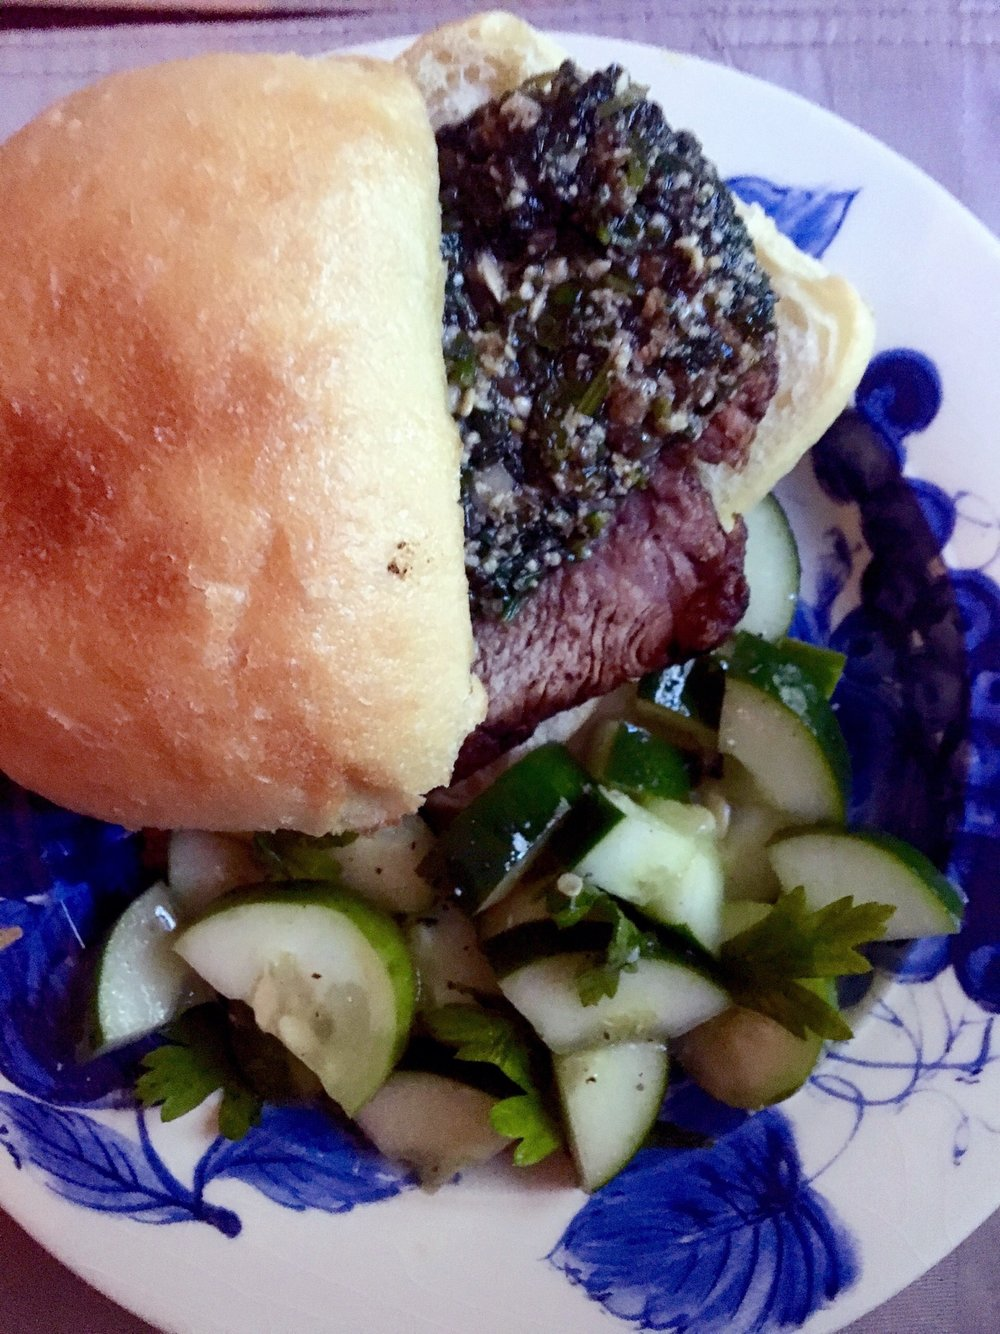 PORCHETTA STYLE SANDWICHES WITH BABY KALE PESTO & MARINATED CUCUMBER SALAD - BLUE APRON